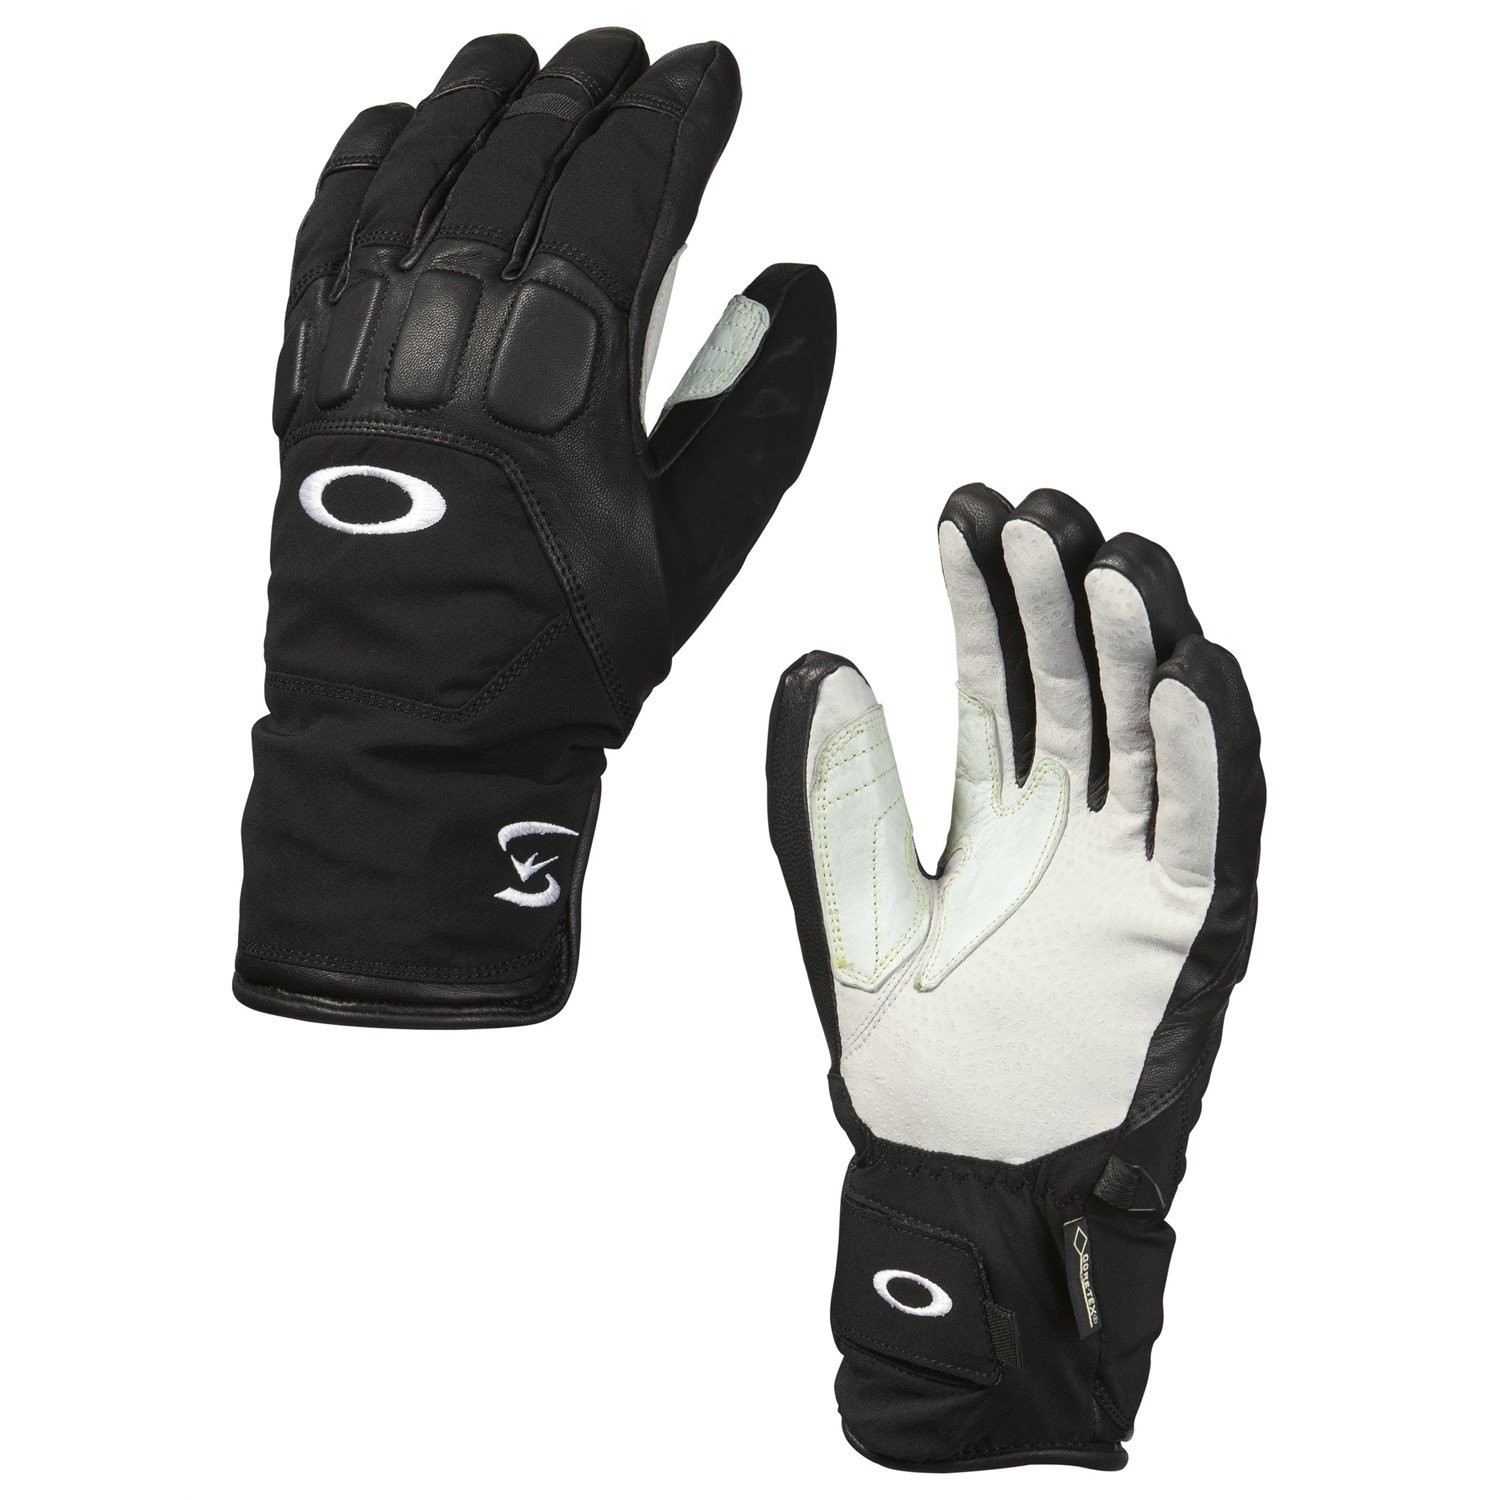 Oakley Snowboarding Gloves